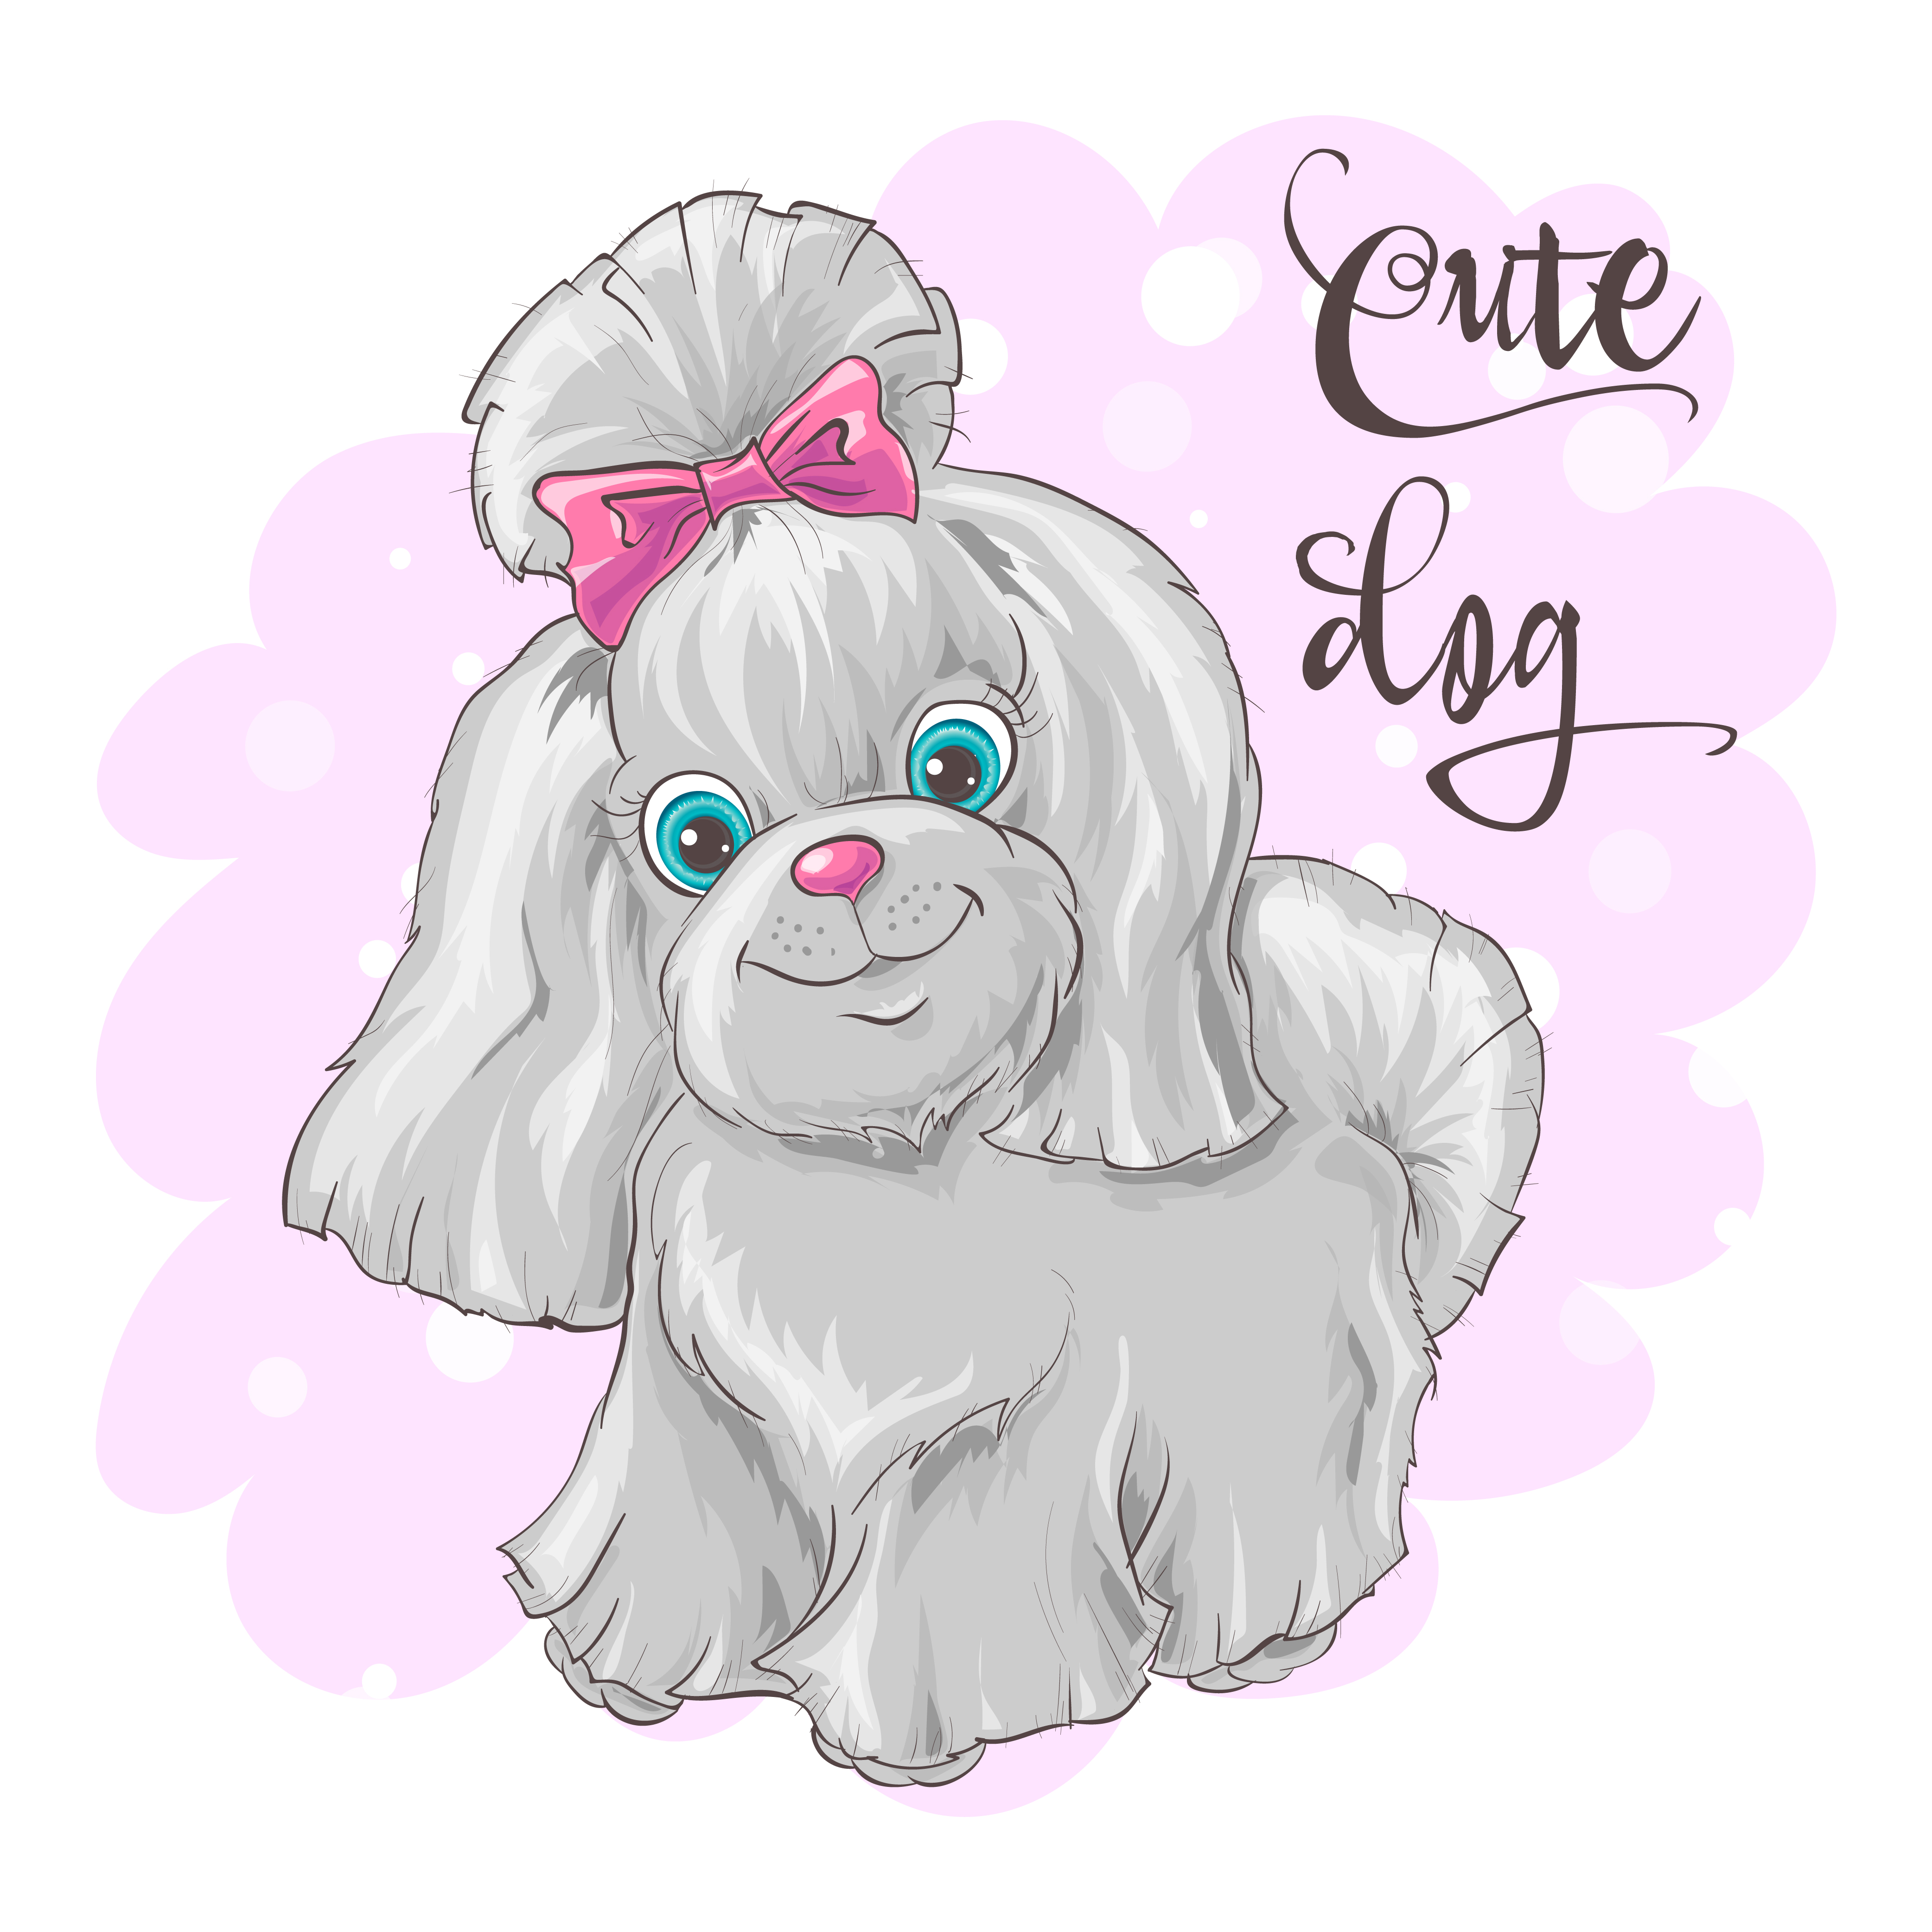 Illustration Of A Cute Little Dog Print For Clothes Or Children